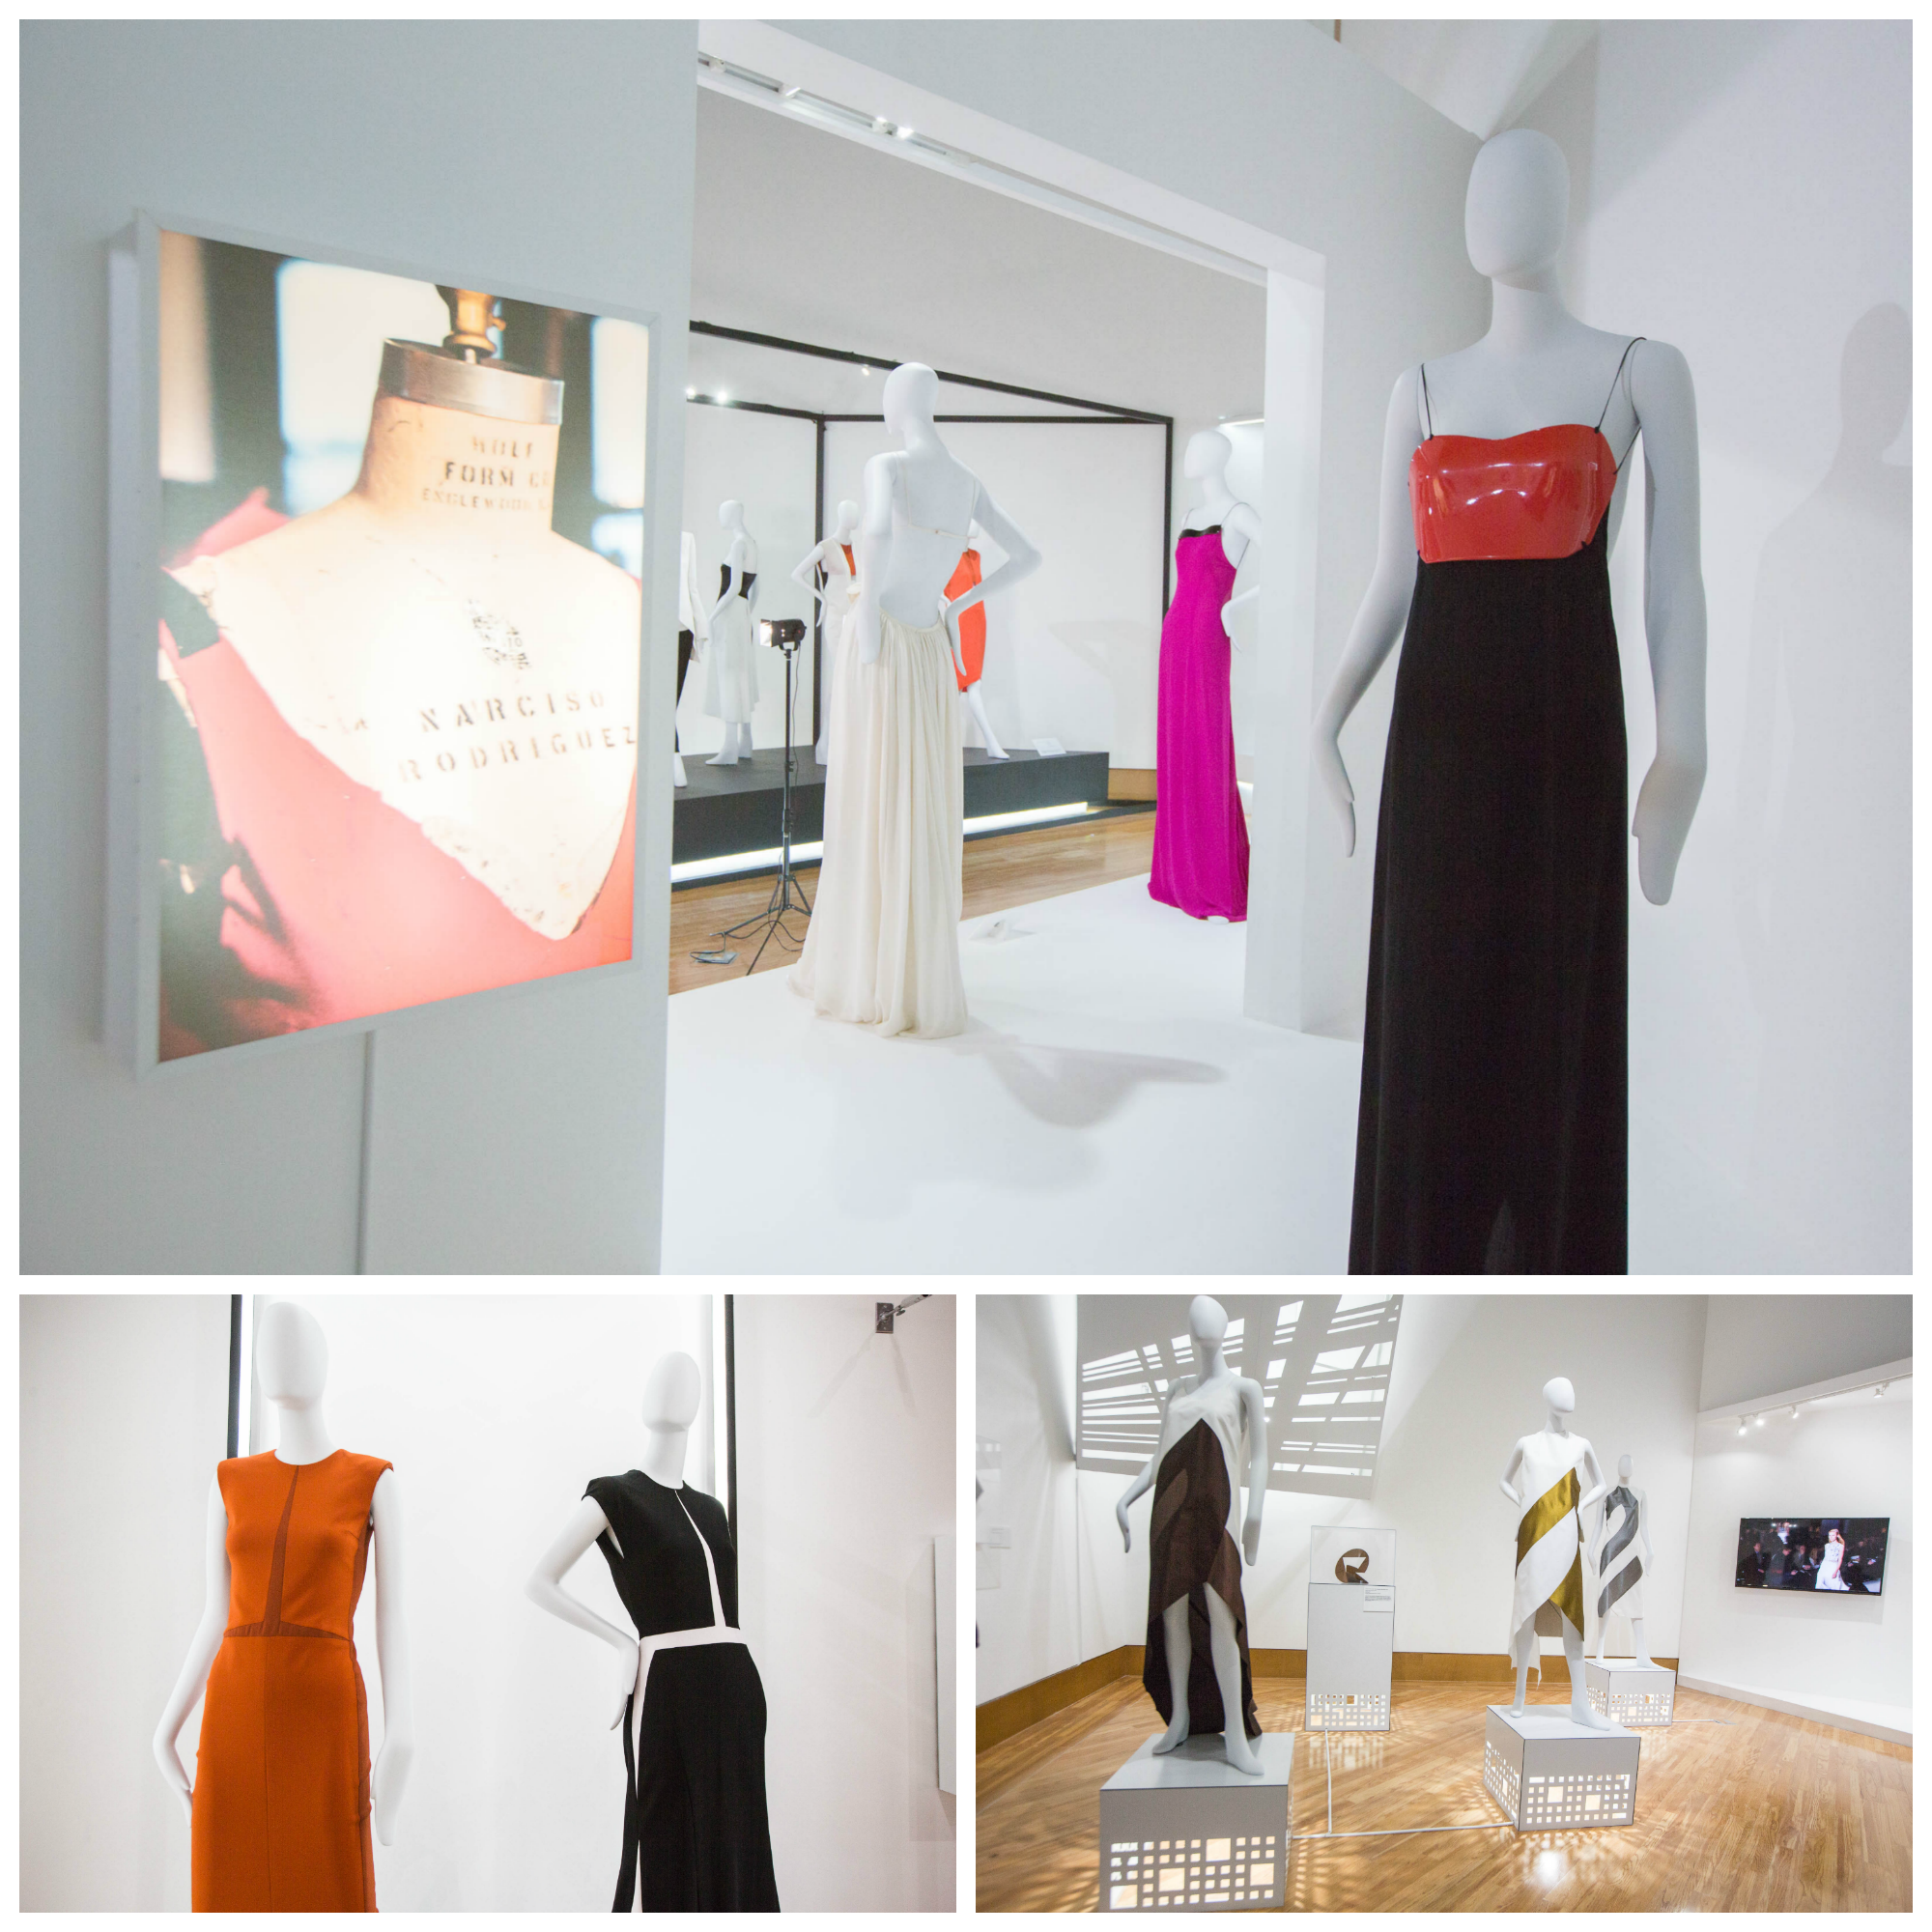 Narciso Rodriguez exhibit at FIU